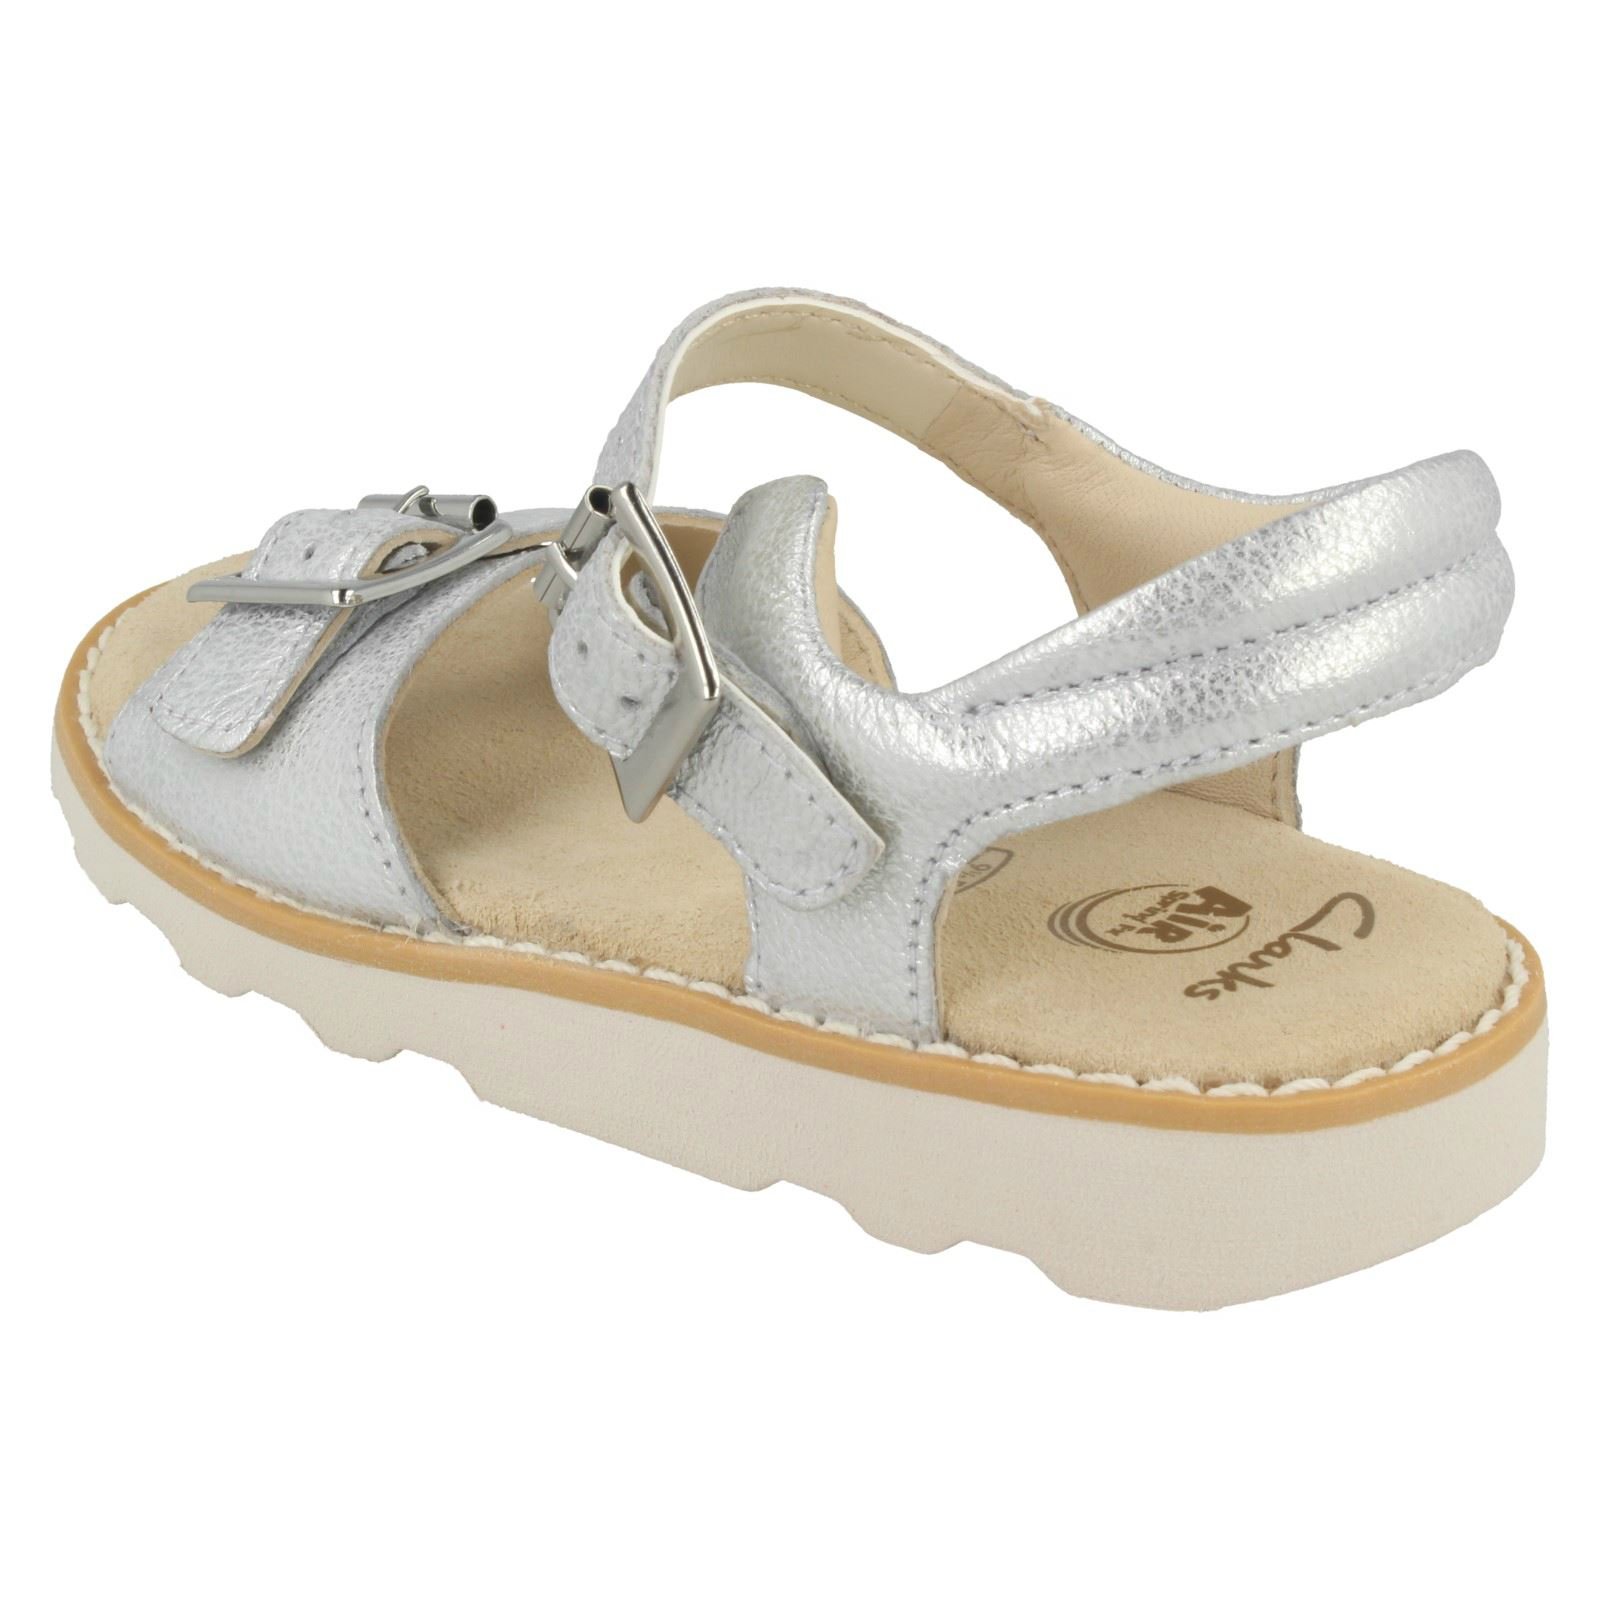 Clarks Girls Casual Strapped Sandals Crown Bloom